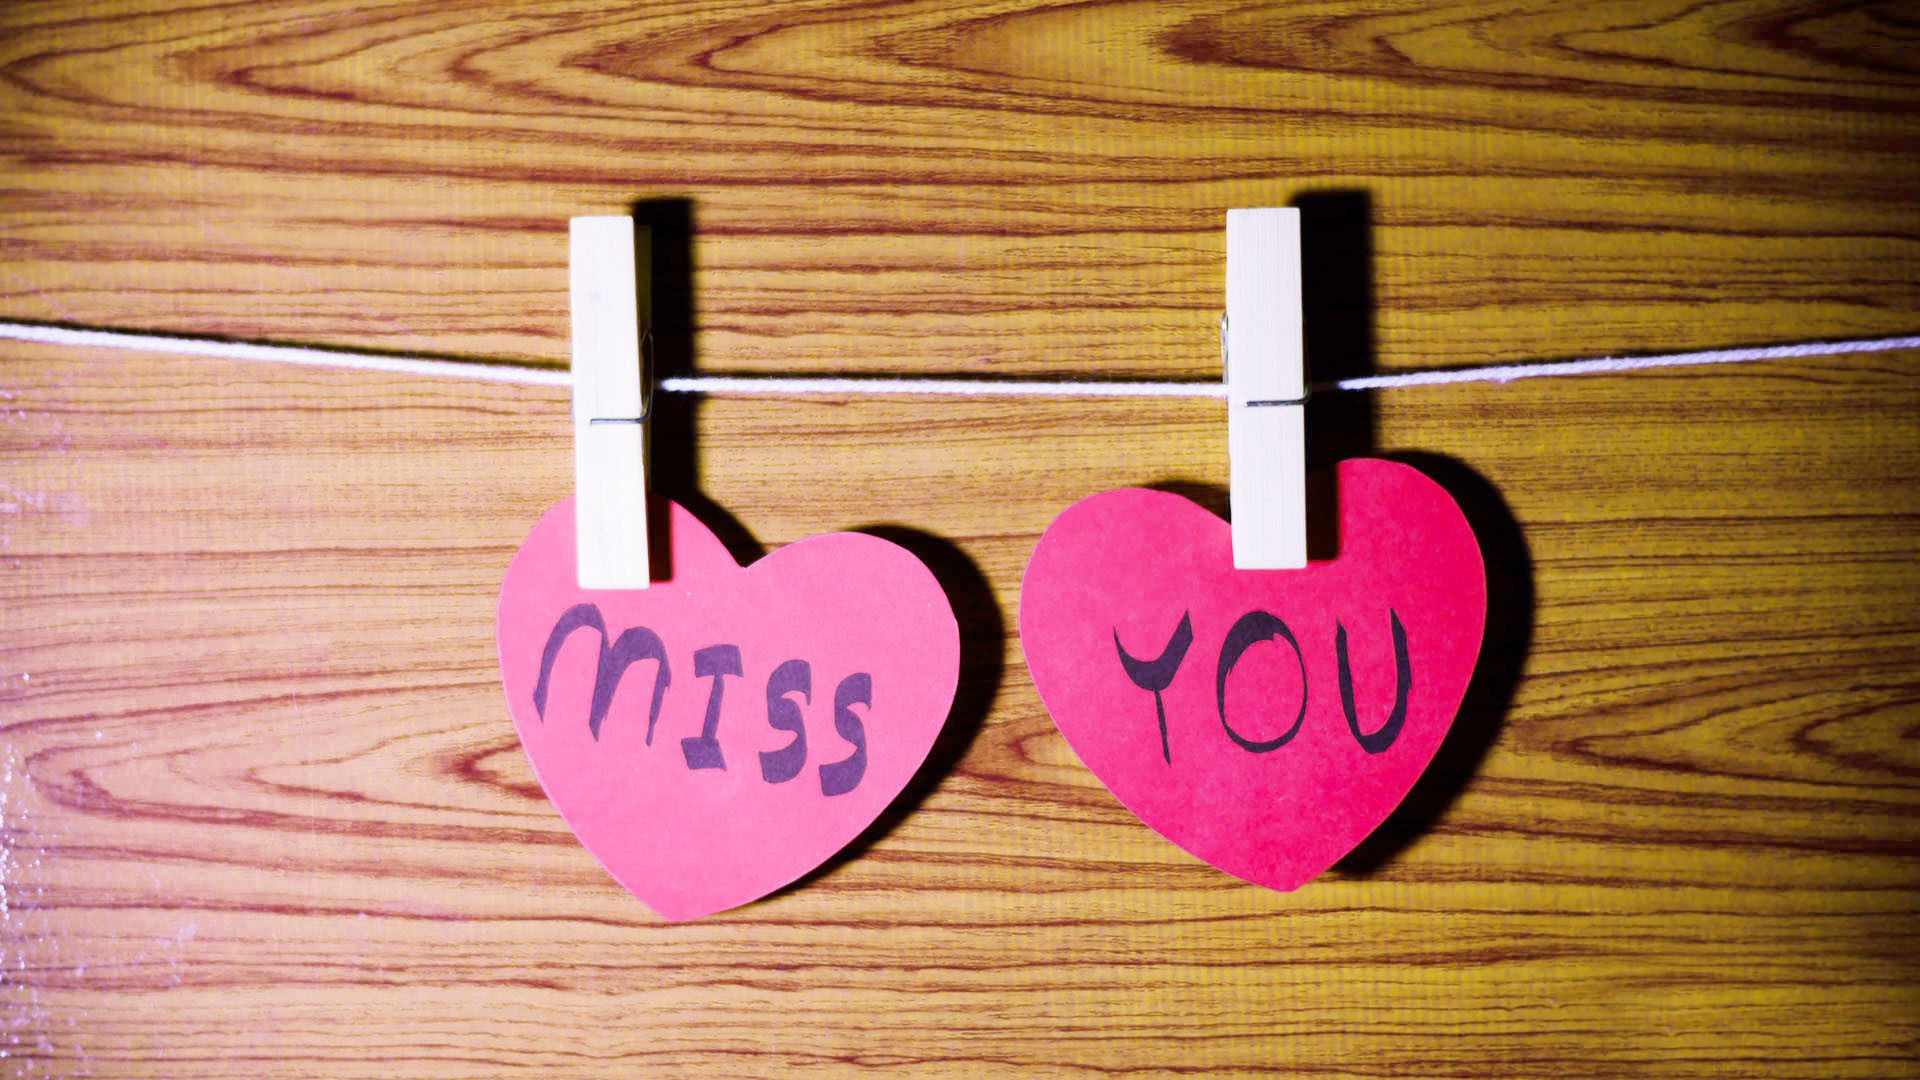 I Miss You Wallpapers Images Photos Pictures Backgrounds